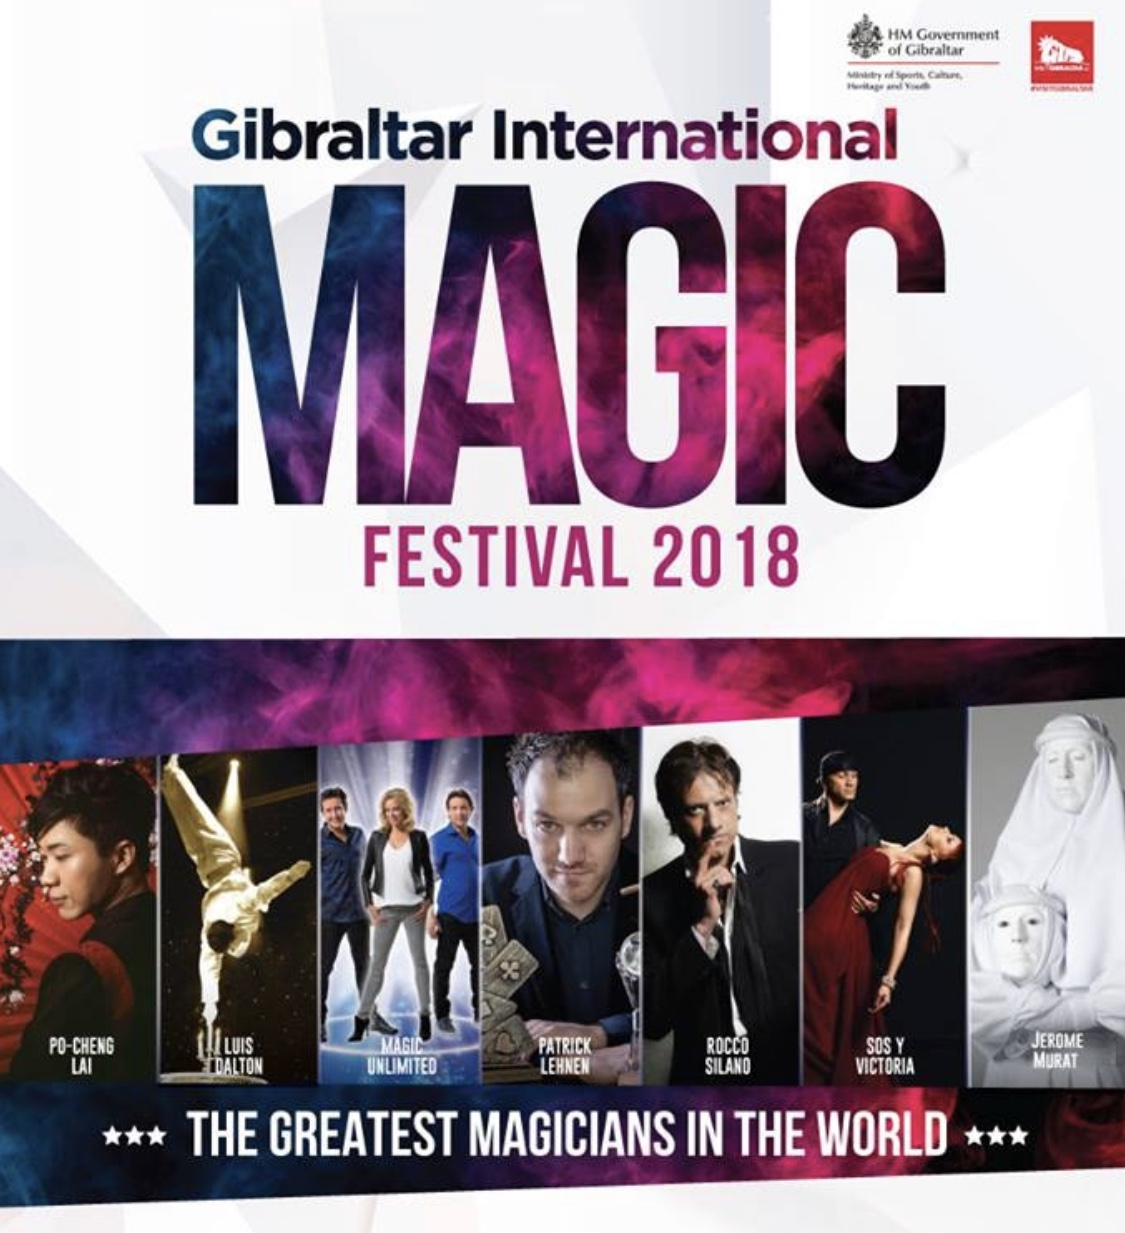 John Mackintosh Hall, matinees and evenings - Fun for all the family as Europe's top magicians, illusionists and circus acts astound you with their superhuman skills. Prices, times and tickets from www.buytickets.gi